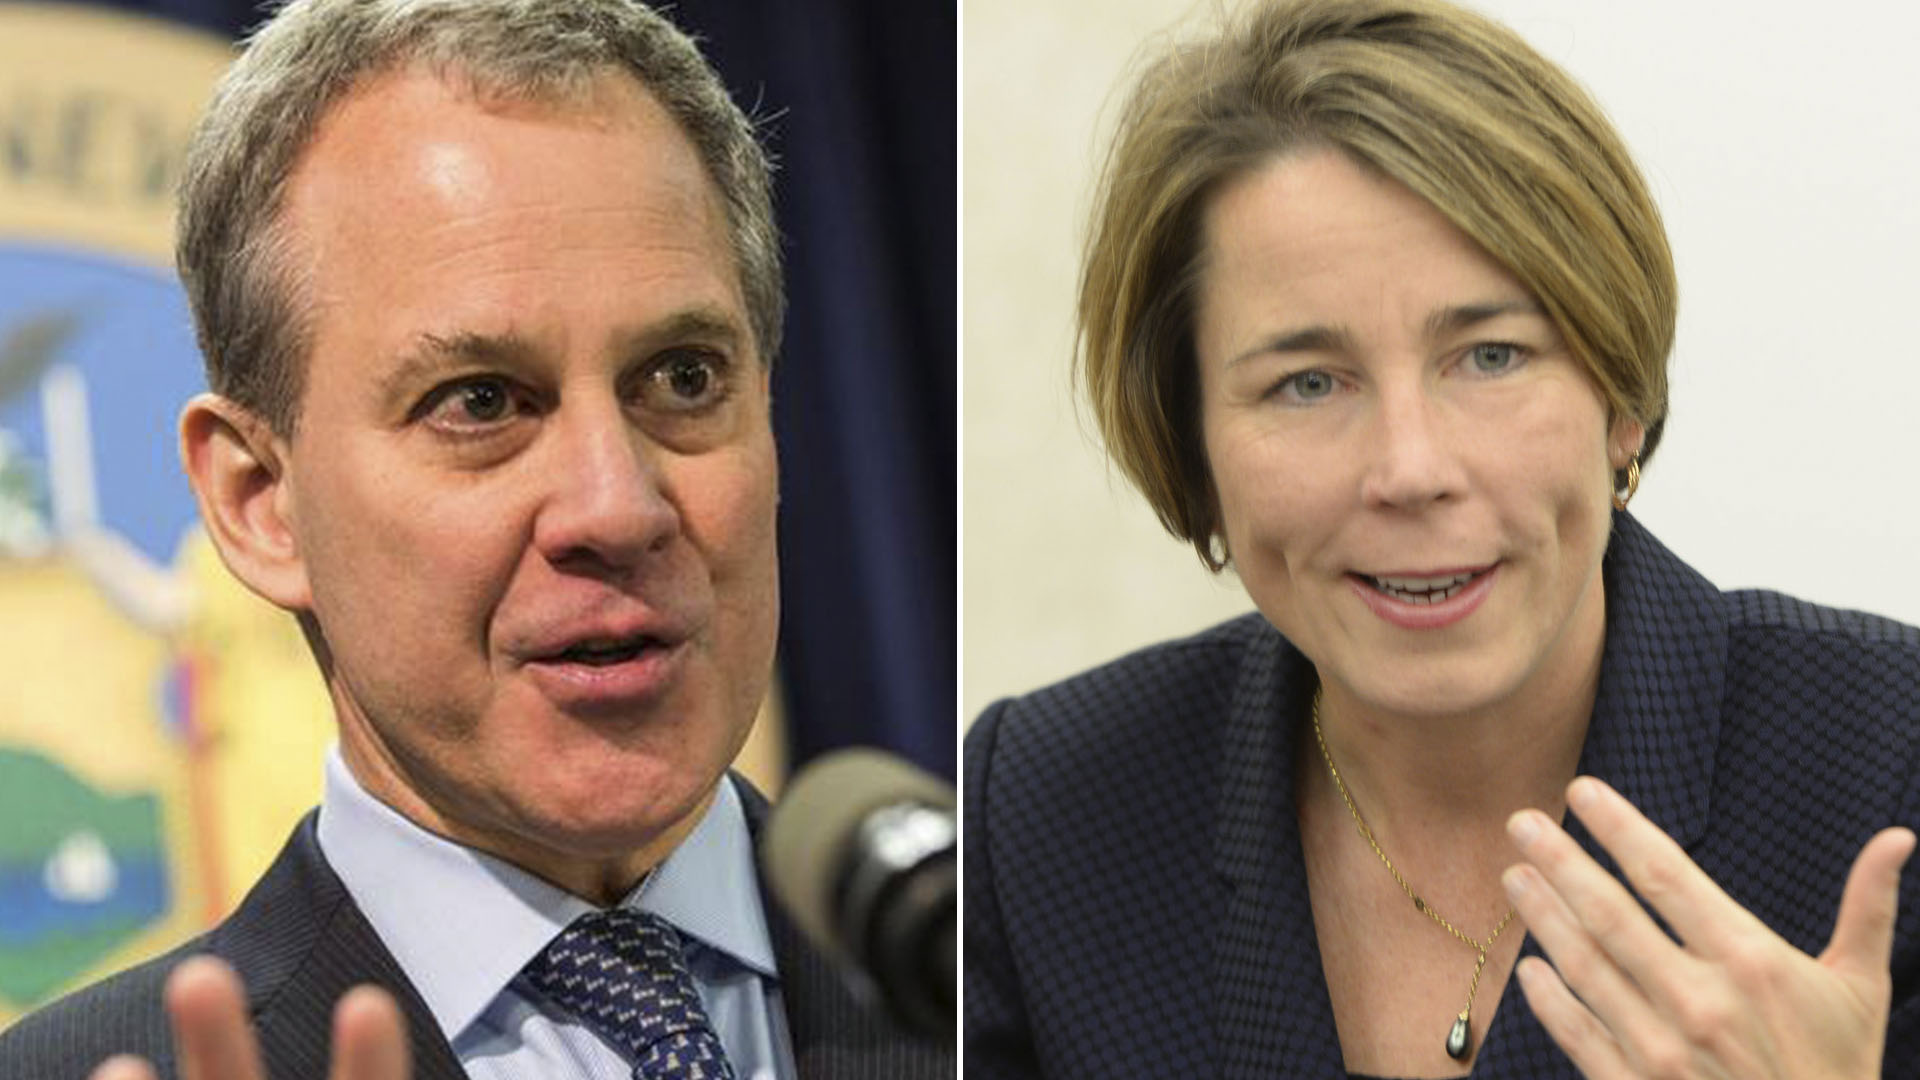 El fiscal general de Nueva York, Eric Schneiderman, y la fiscal general de Massachusetts, Maura Healey